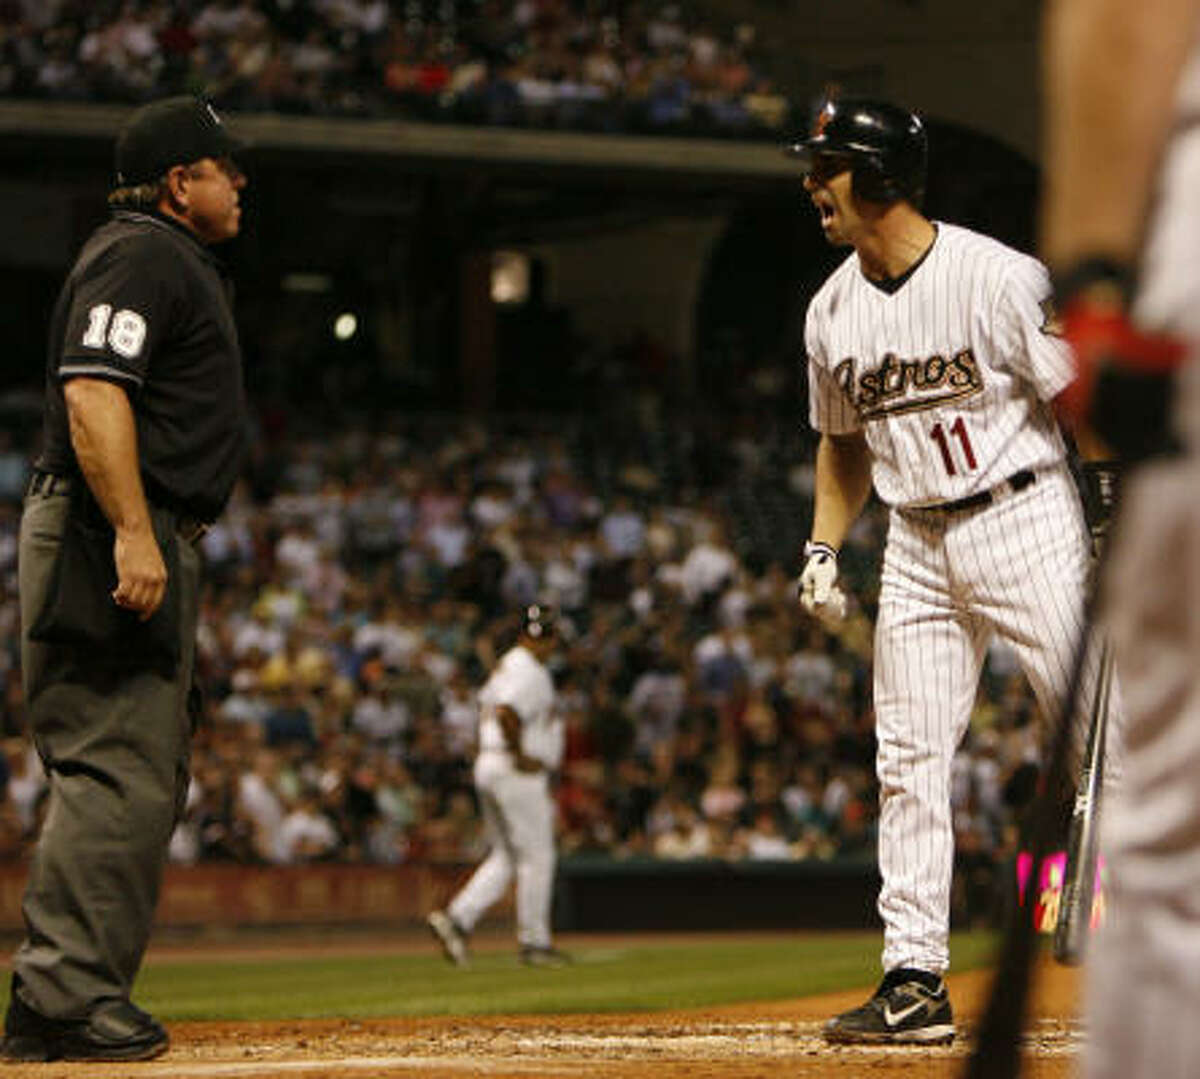 Brad Ausmus argues with an umpire in Wednesday's game.